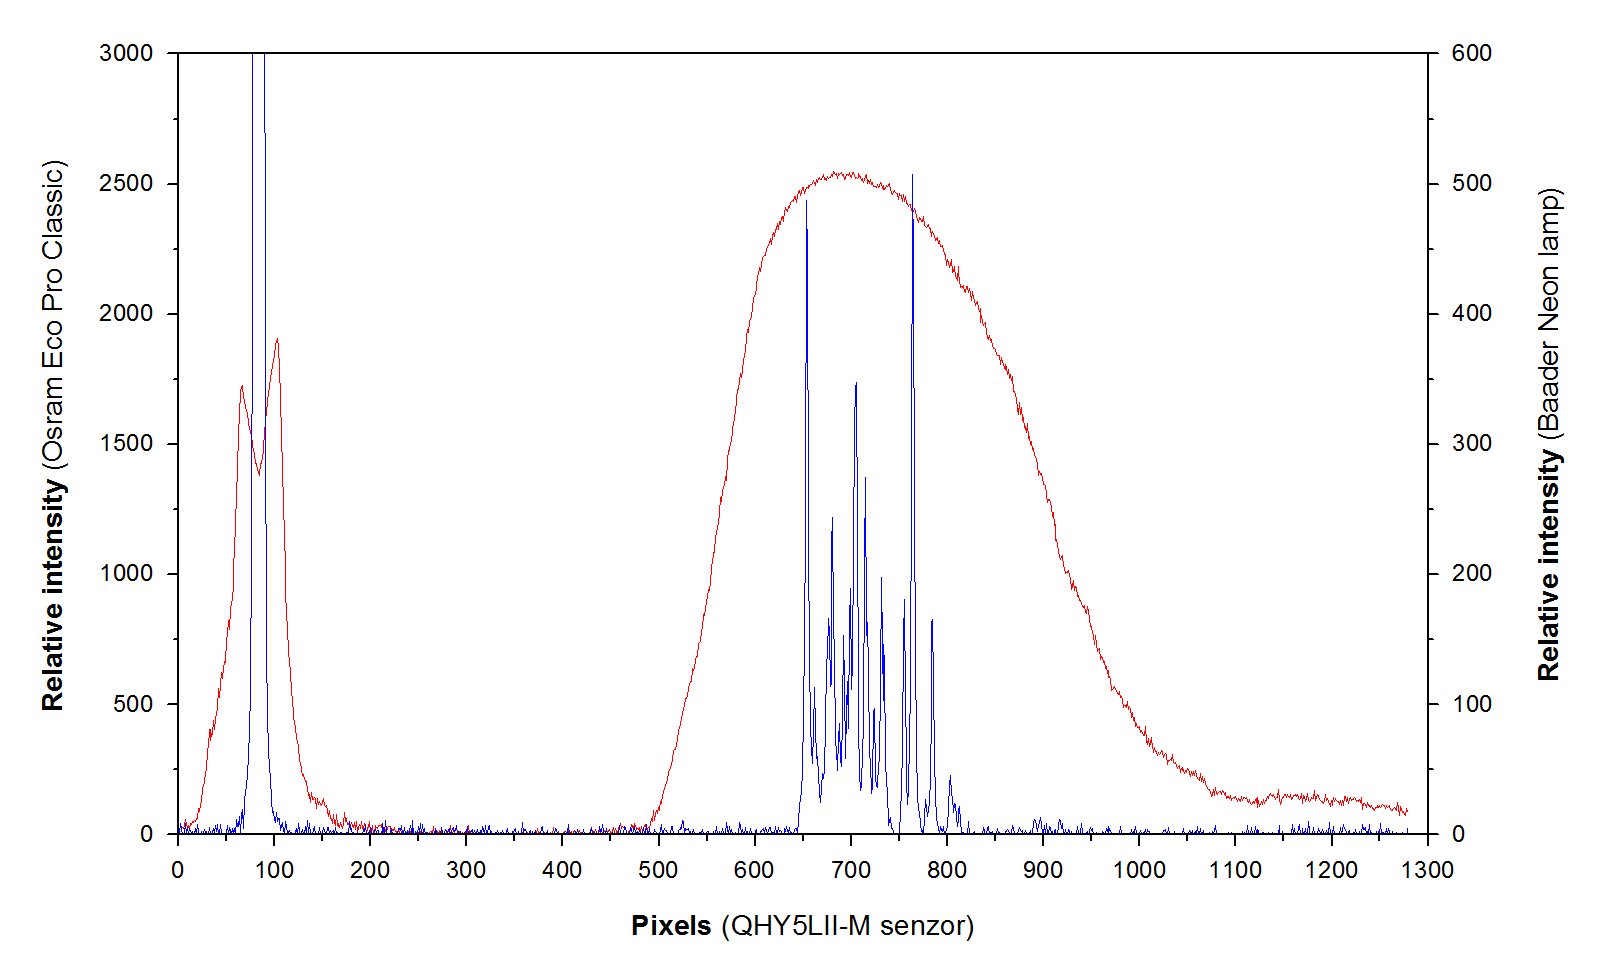 Raw (uncalibrated) curves from calibration sources measurement - Osram Eco Pro Classic 20W (y- axis calibration, marked in red) and Baader calibration neon lamp (x-axis calibration, marked in blue). Measurement was performed by the spectrograph QHY5L-IIM, on the y-axis of the graph is the intensity of the spectrum (relative units) and on the x-axis are pixels of the spectrograph sensor.